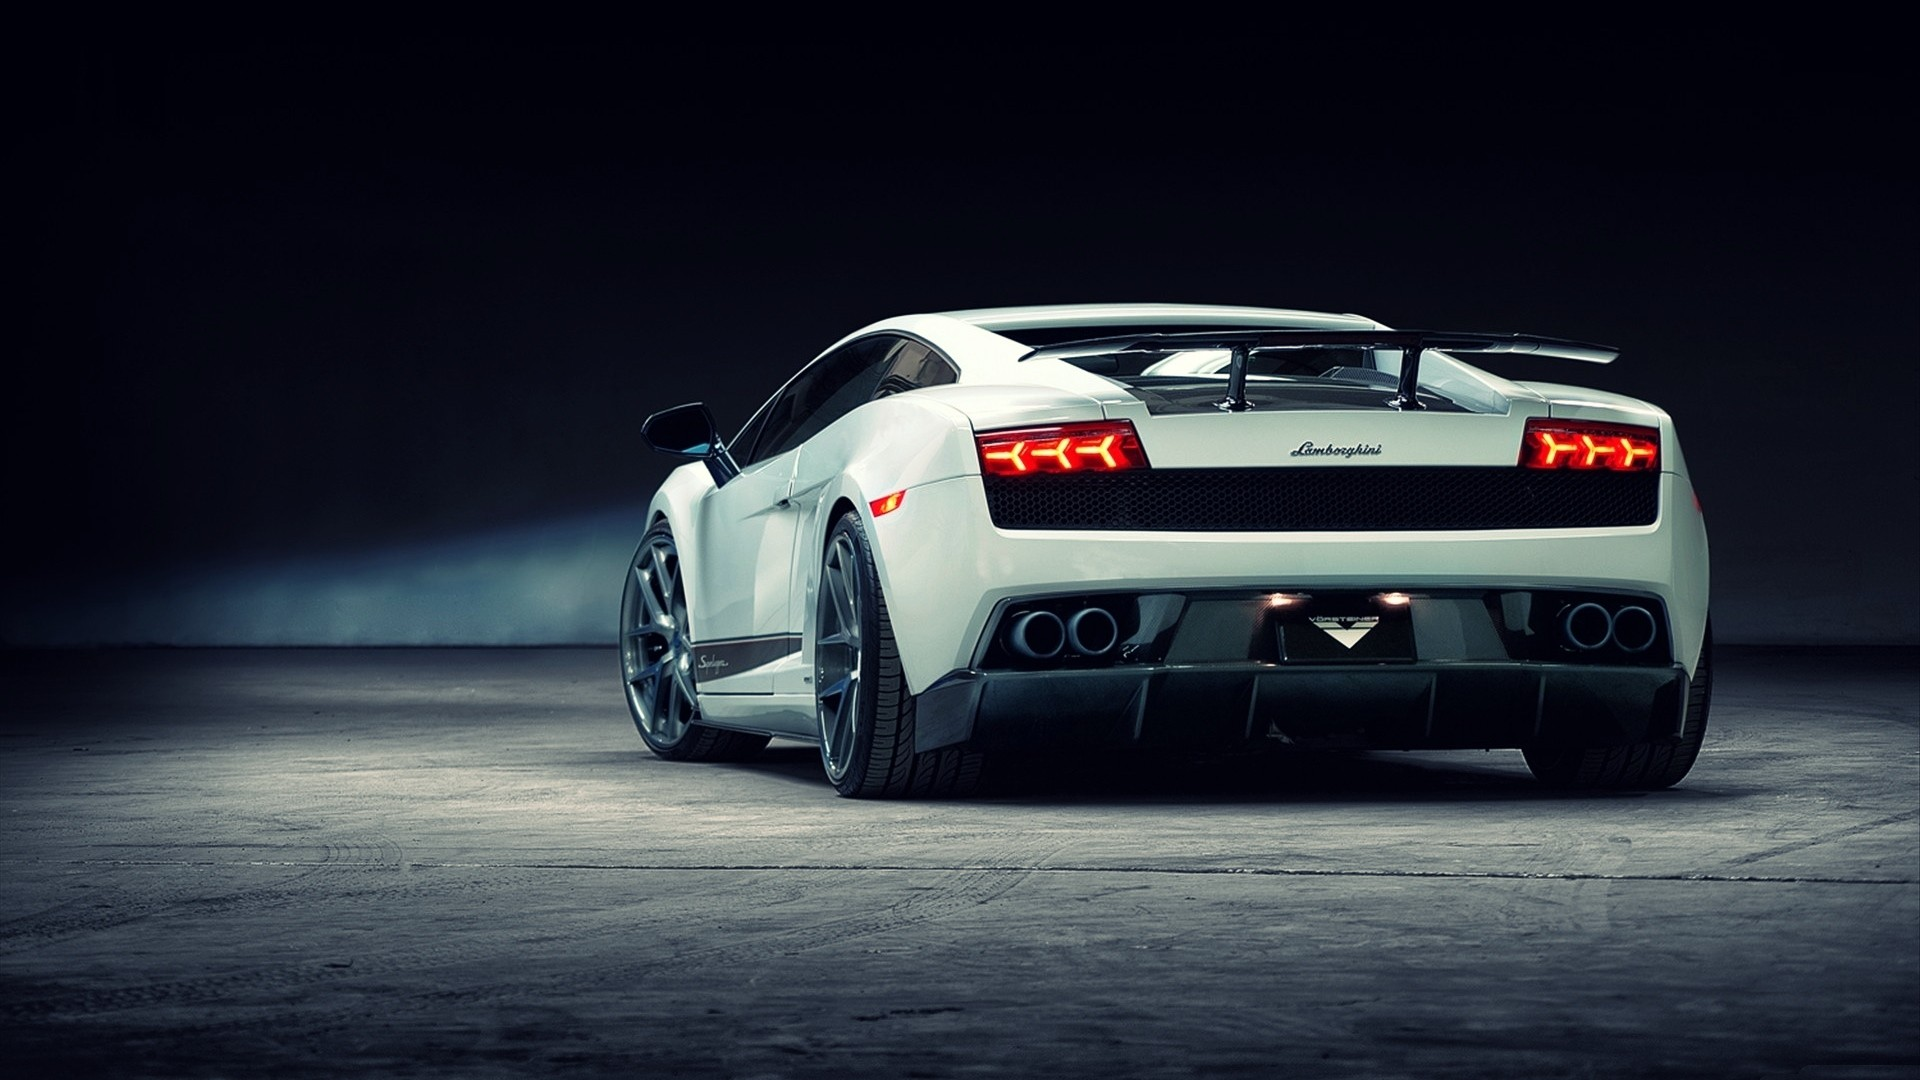 Cars Wallpaper Set 1 Awesome Wallpapers